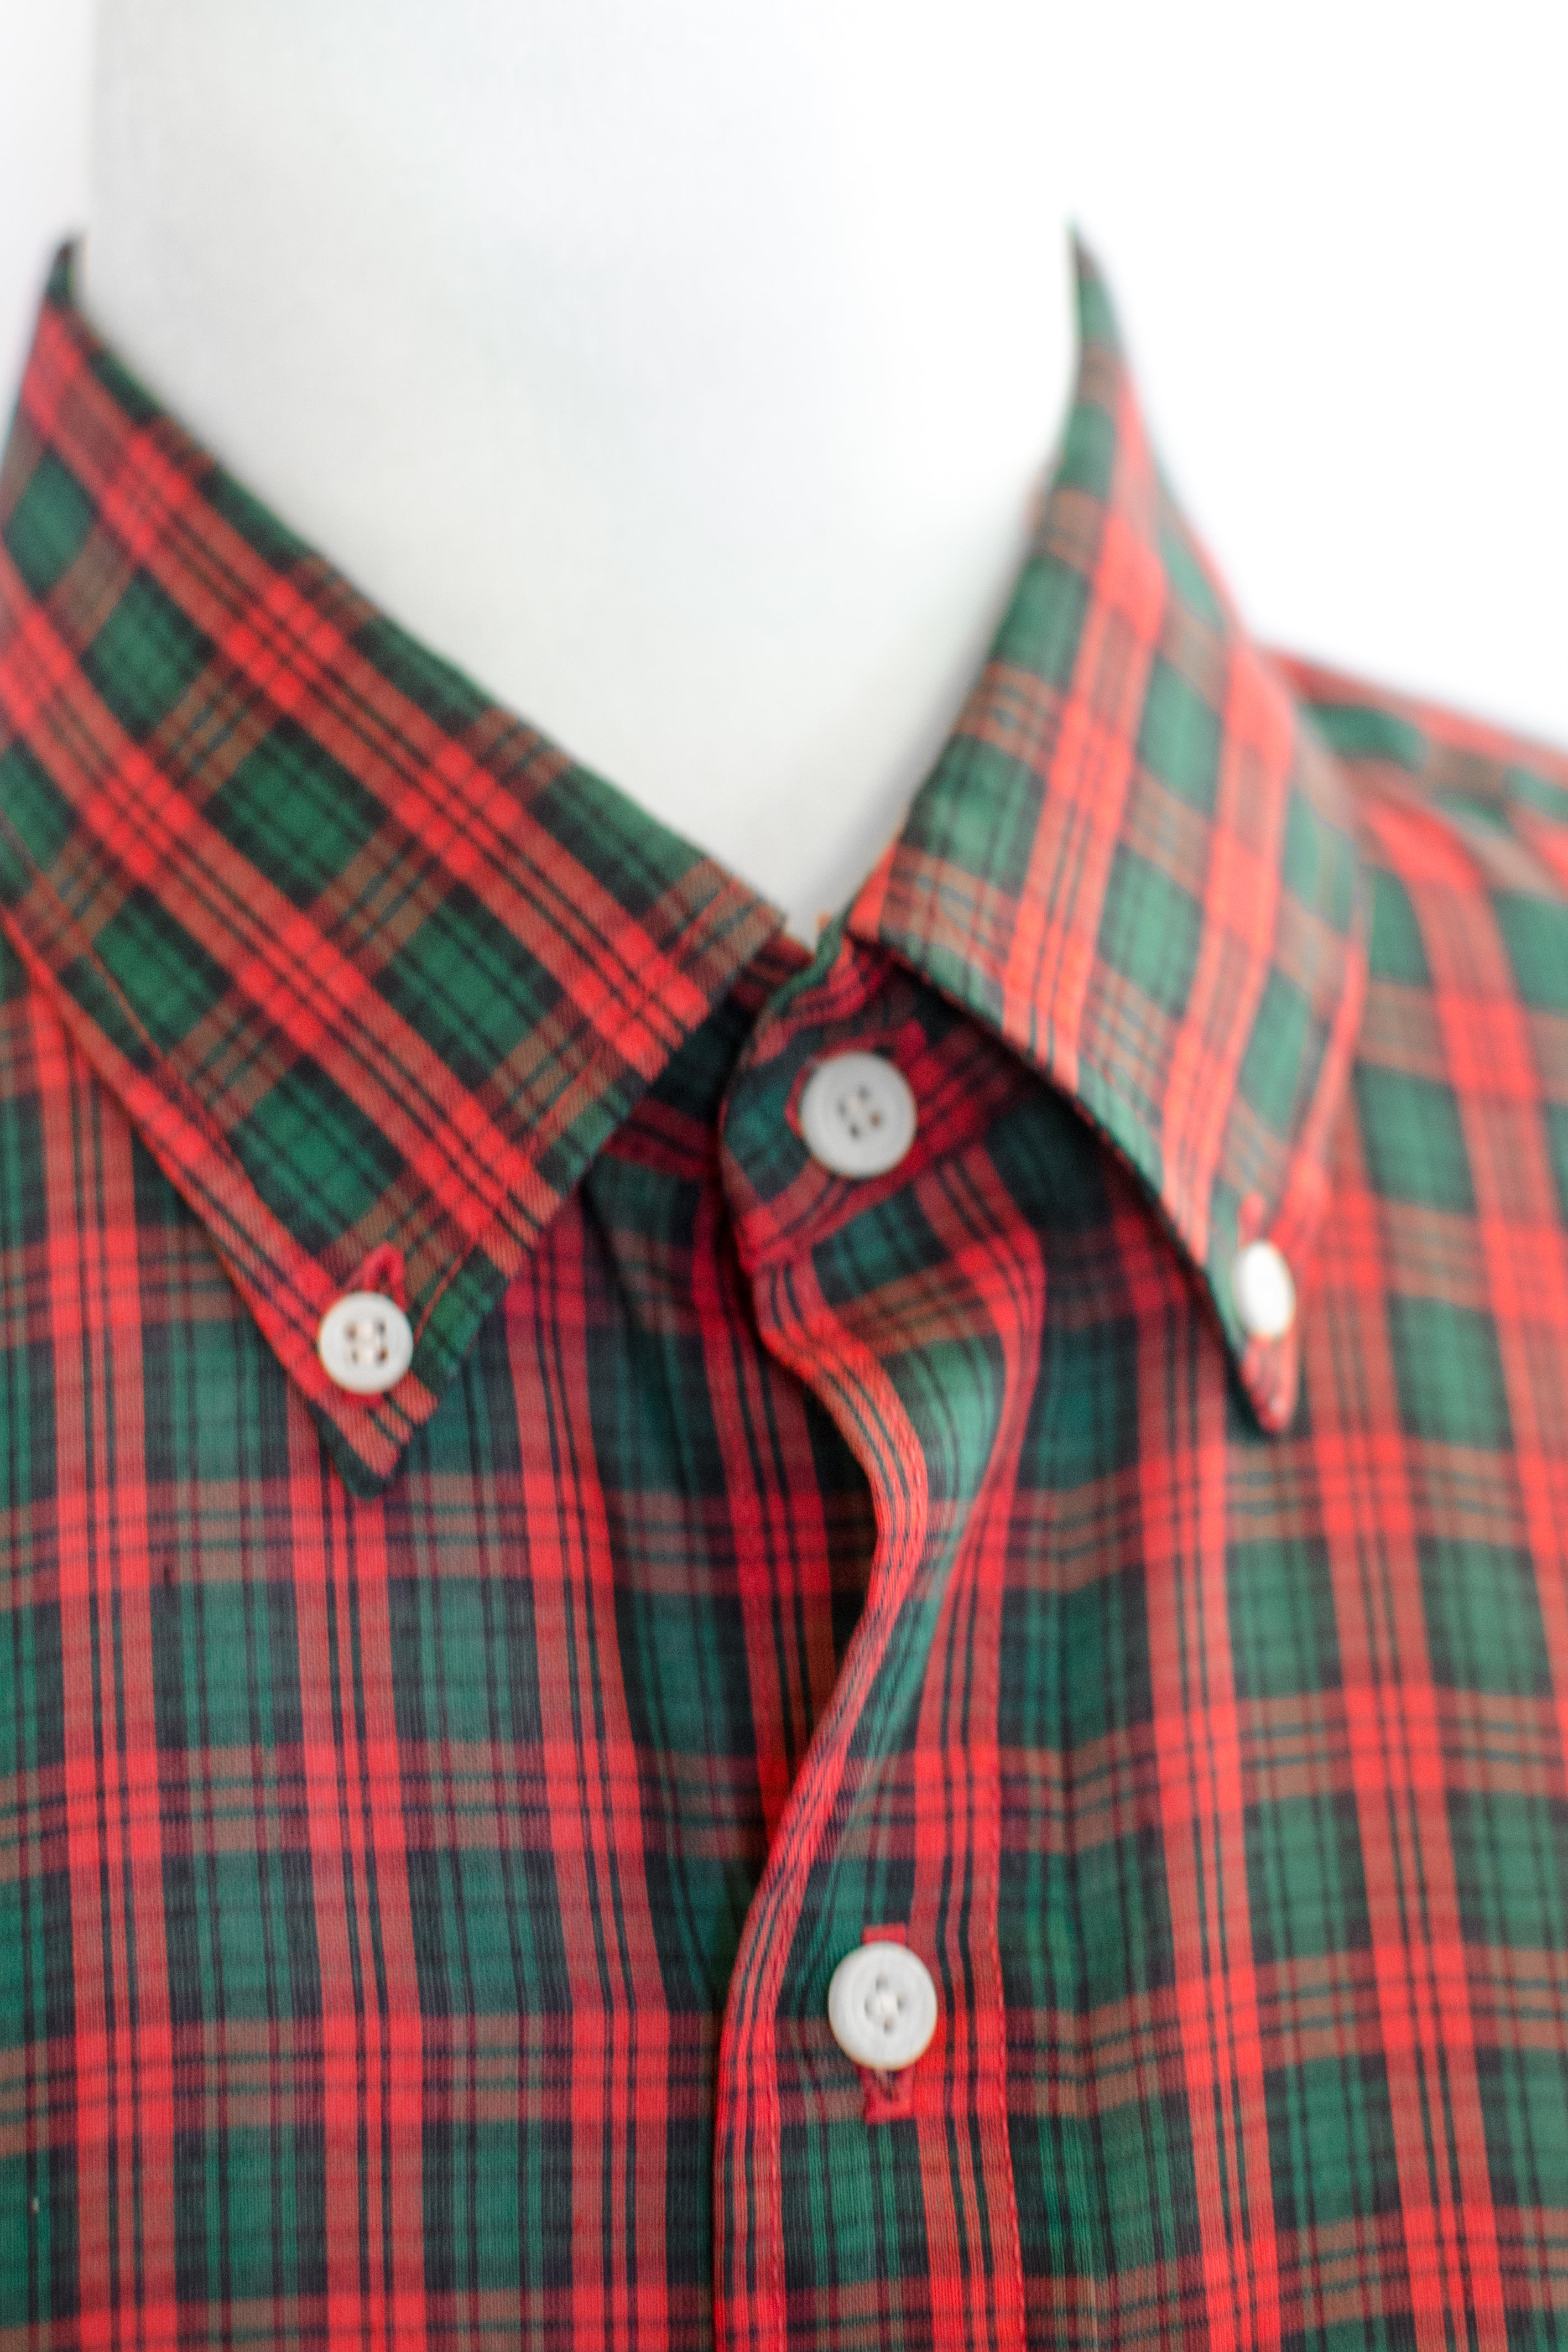 Vintage Red and Green Plaid Shirt / S-M